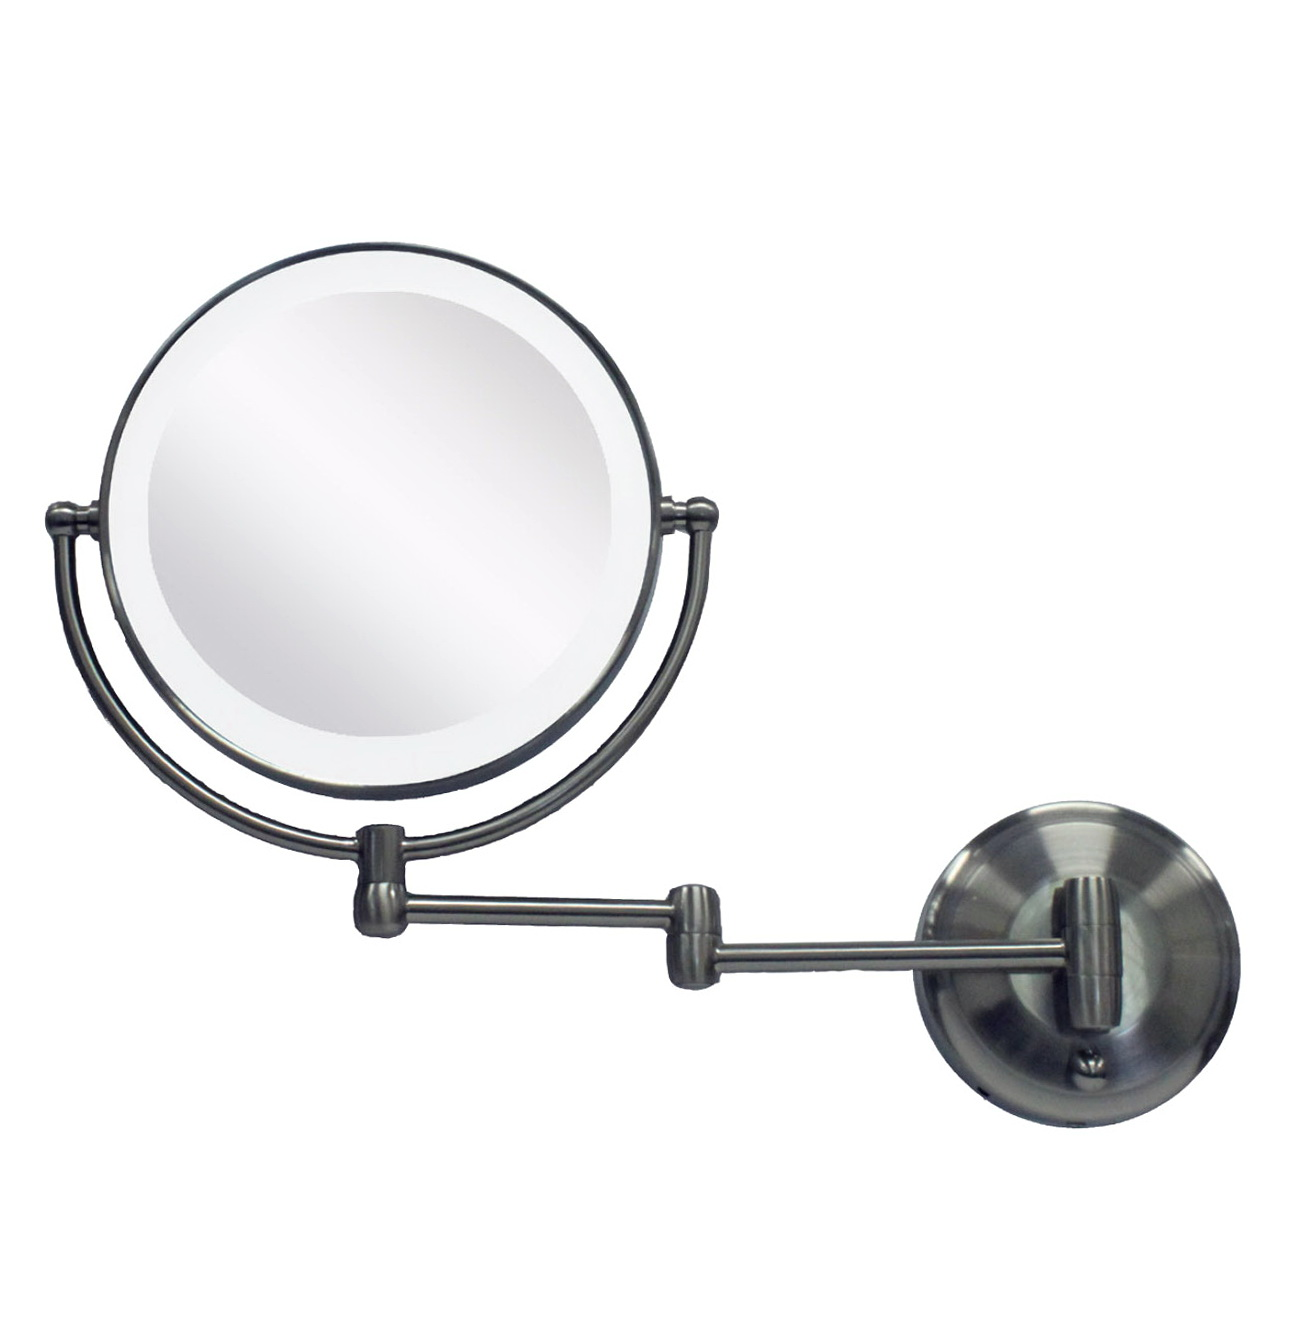 Wall Mount Makeup Mirror X on Best 15x Lighted Magnifying Makeup Mirror